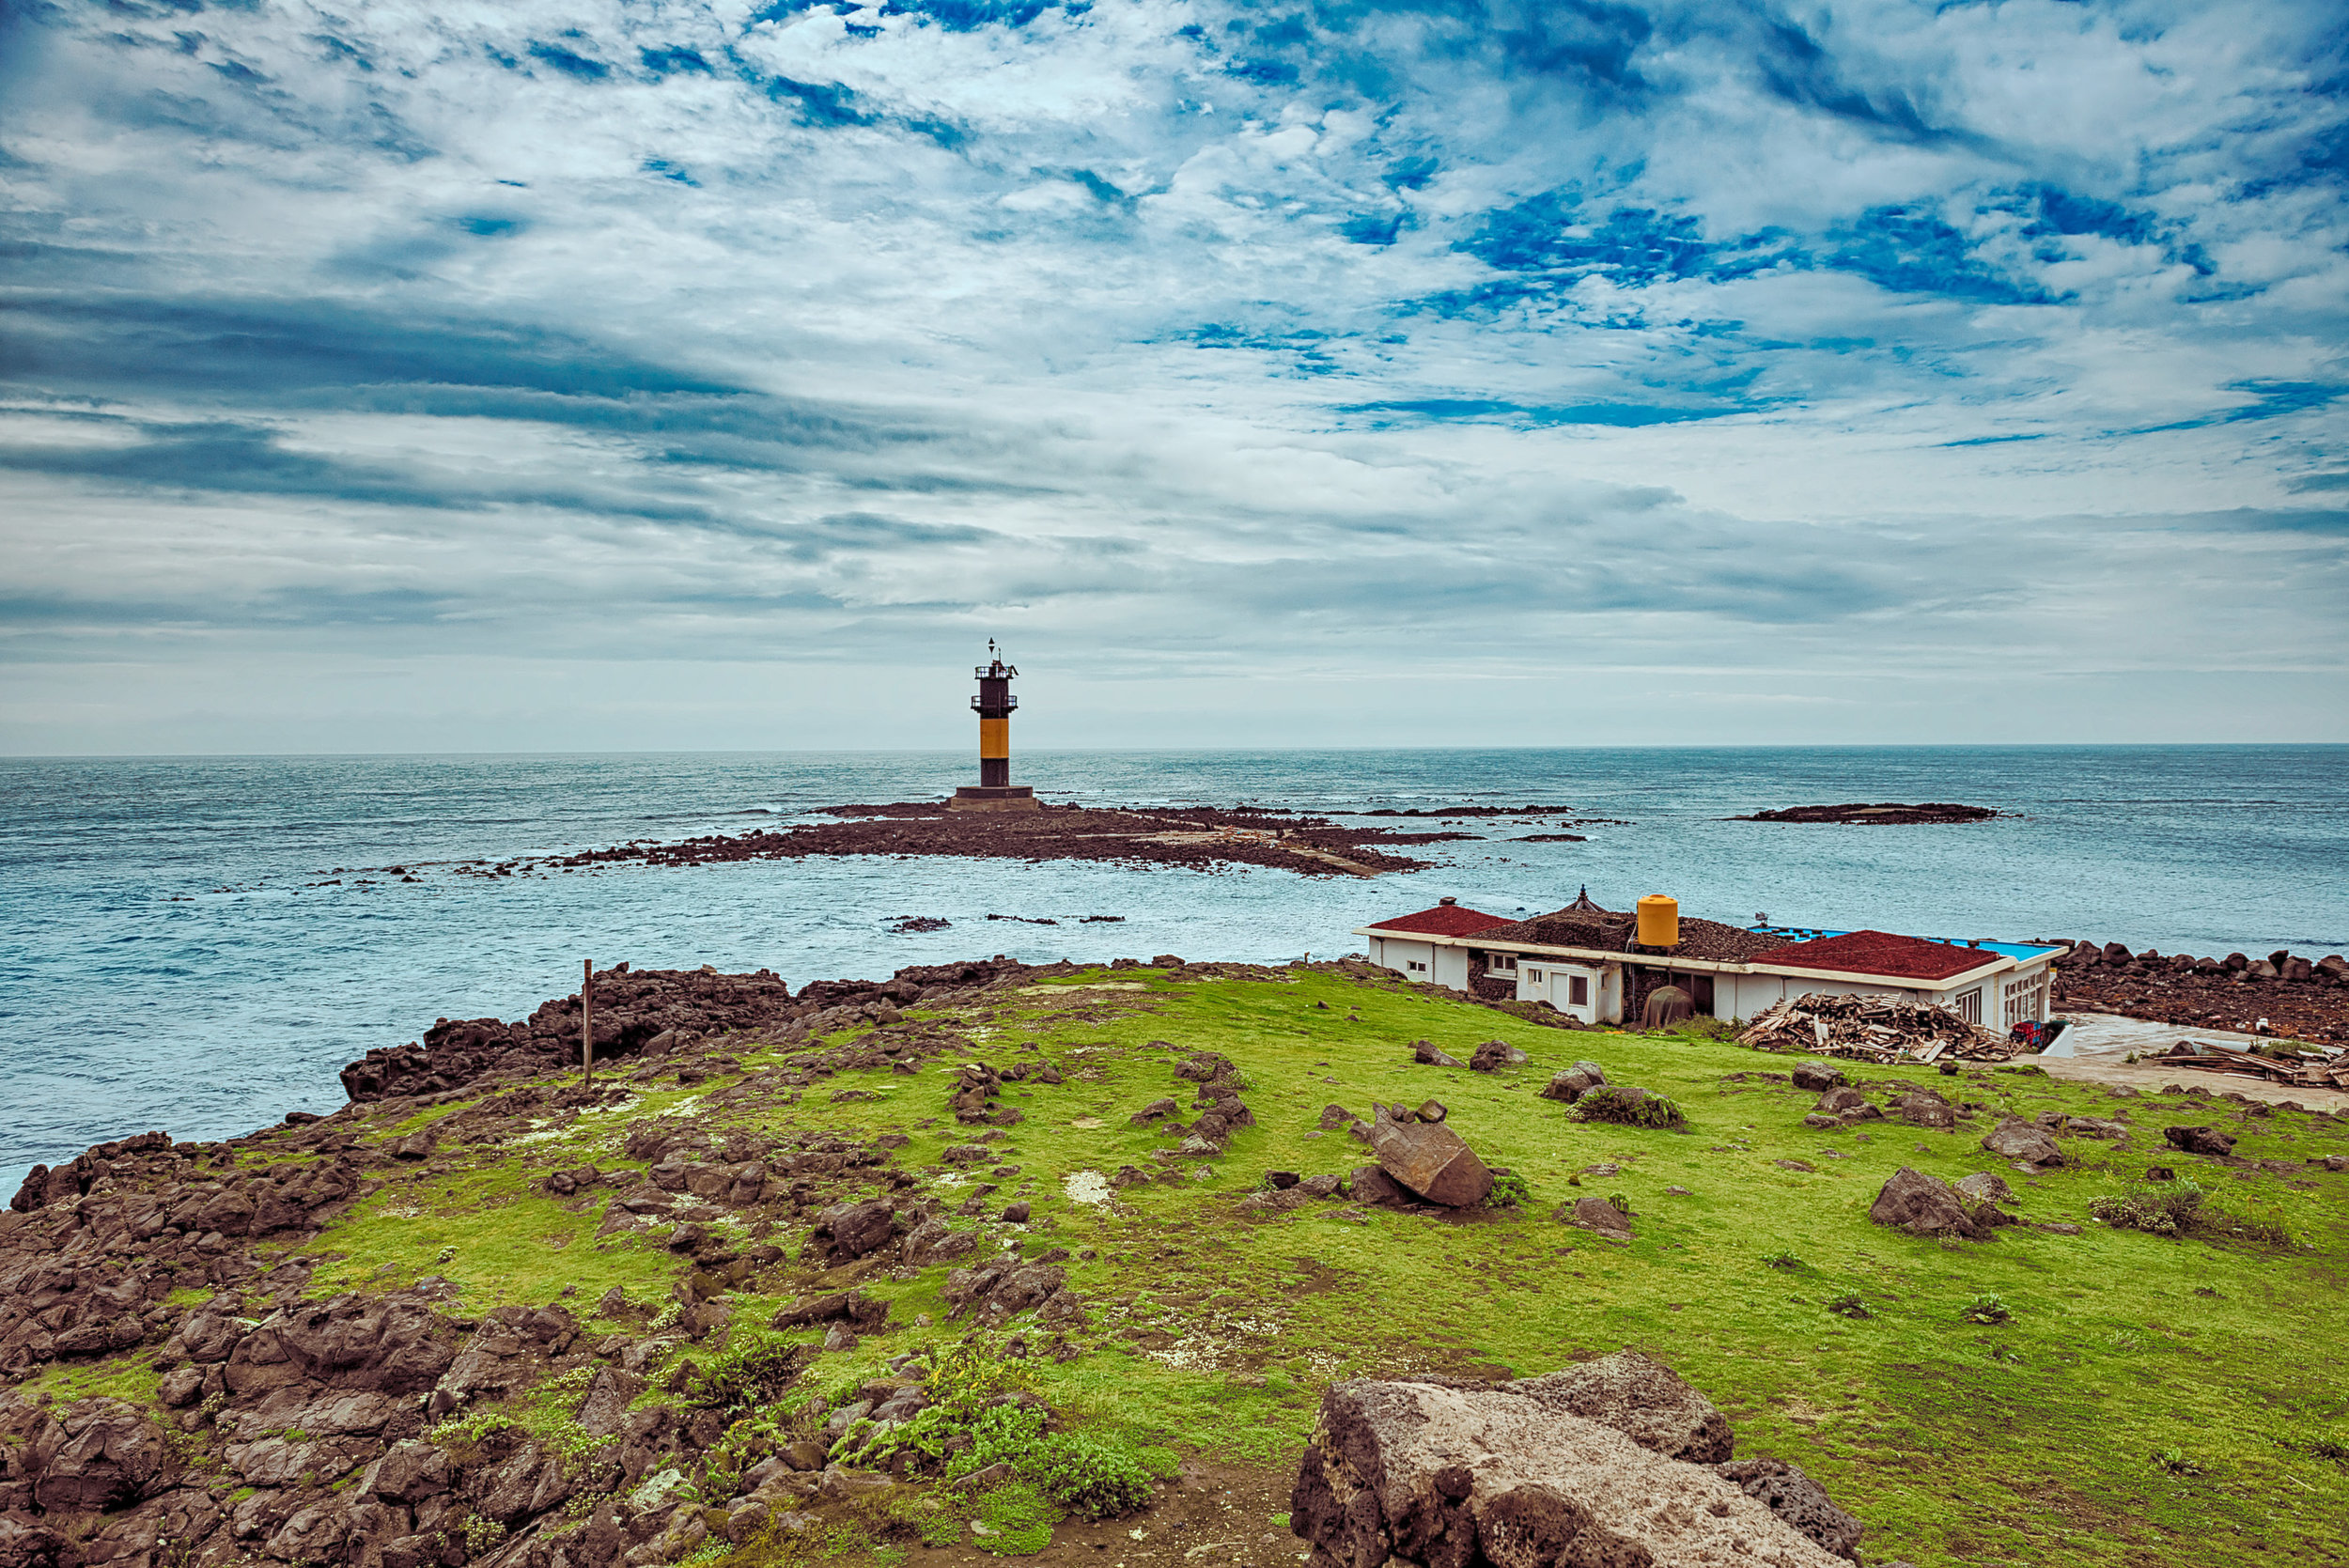 The lighthouse on the edge of Biyang Island (비양도) being surrounded by ocean during high tide.